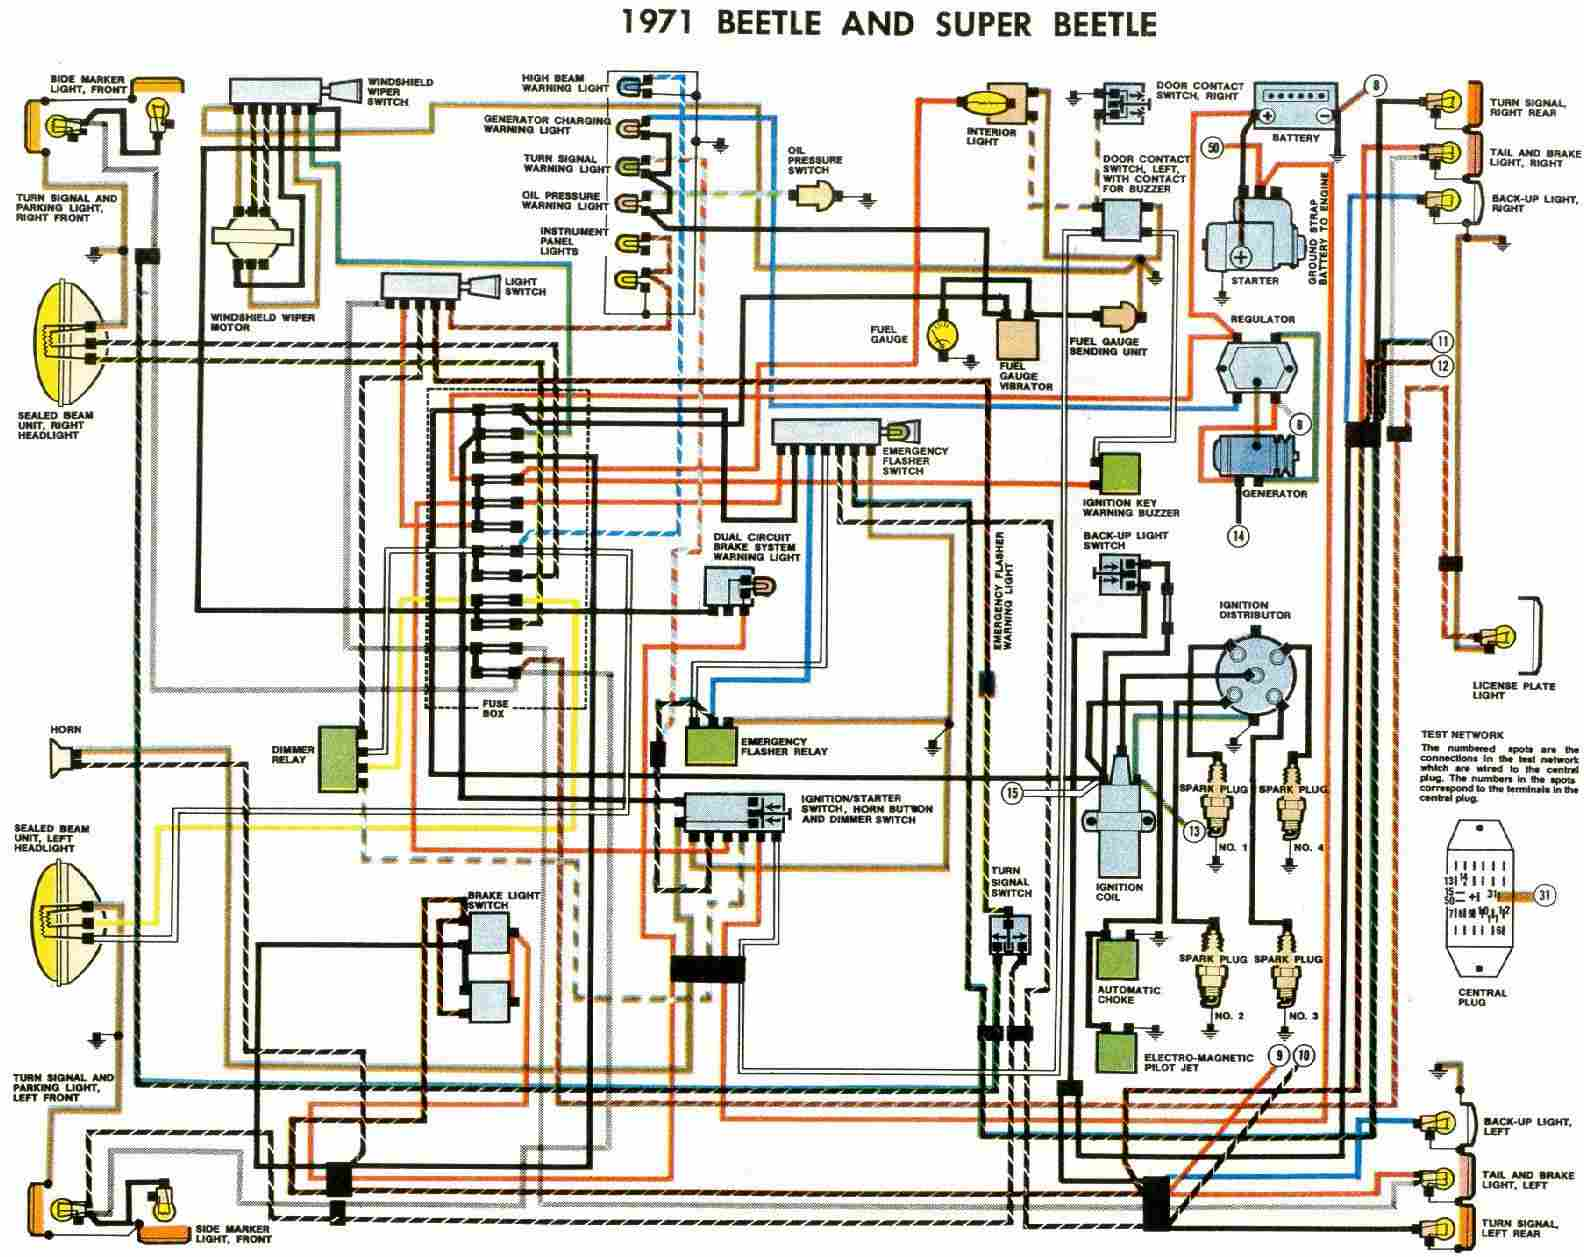 wiring diagram for 1969 vw beetle wiring diagram71 vw bus wiring diagram wiring diagramfree wiring schematics wiring diagramfree volkswagen wiring diagrams wiring diagram